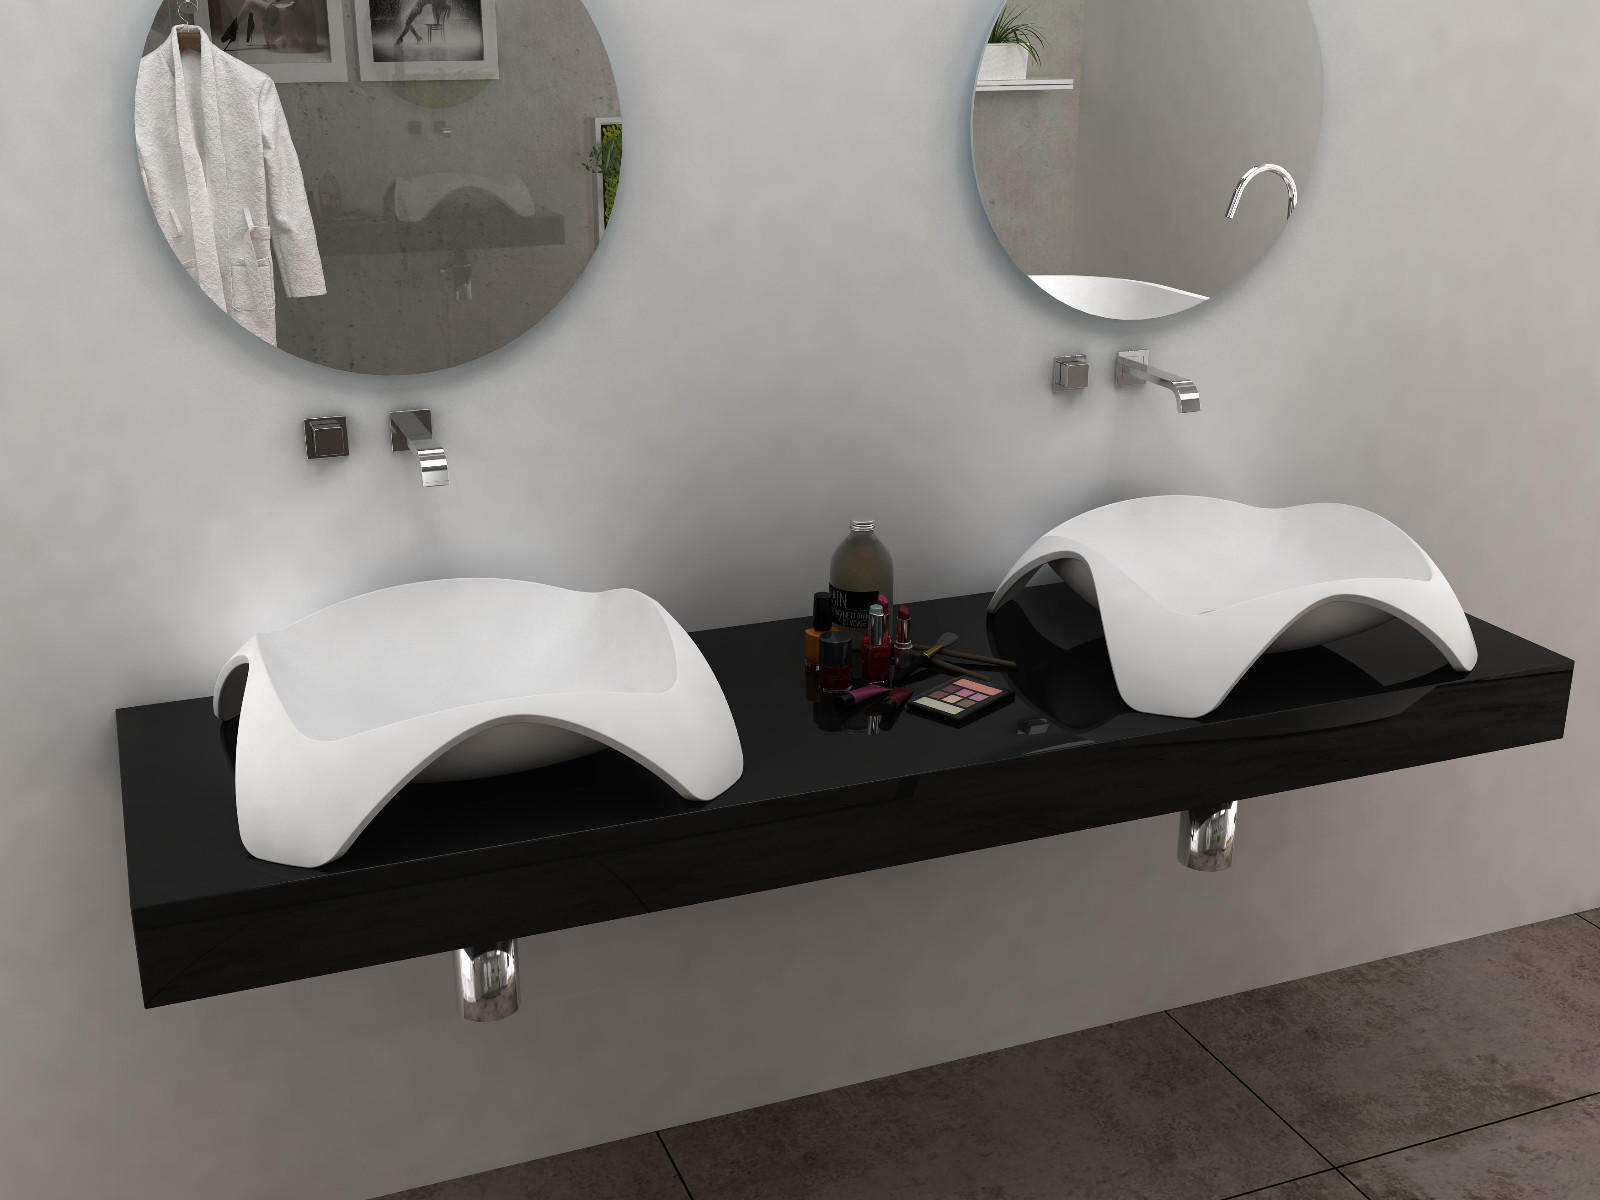 Bellissimo-Find Stone Bathroom Sink stone Countertop Sink On Bellissimo Company Limited